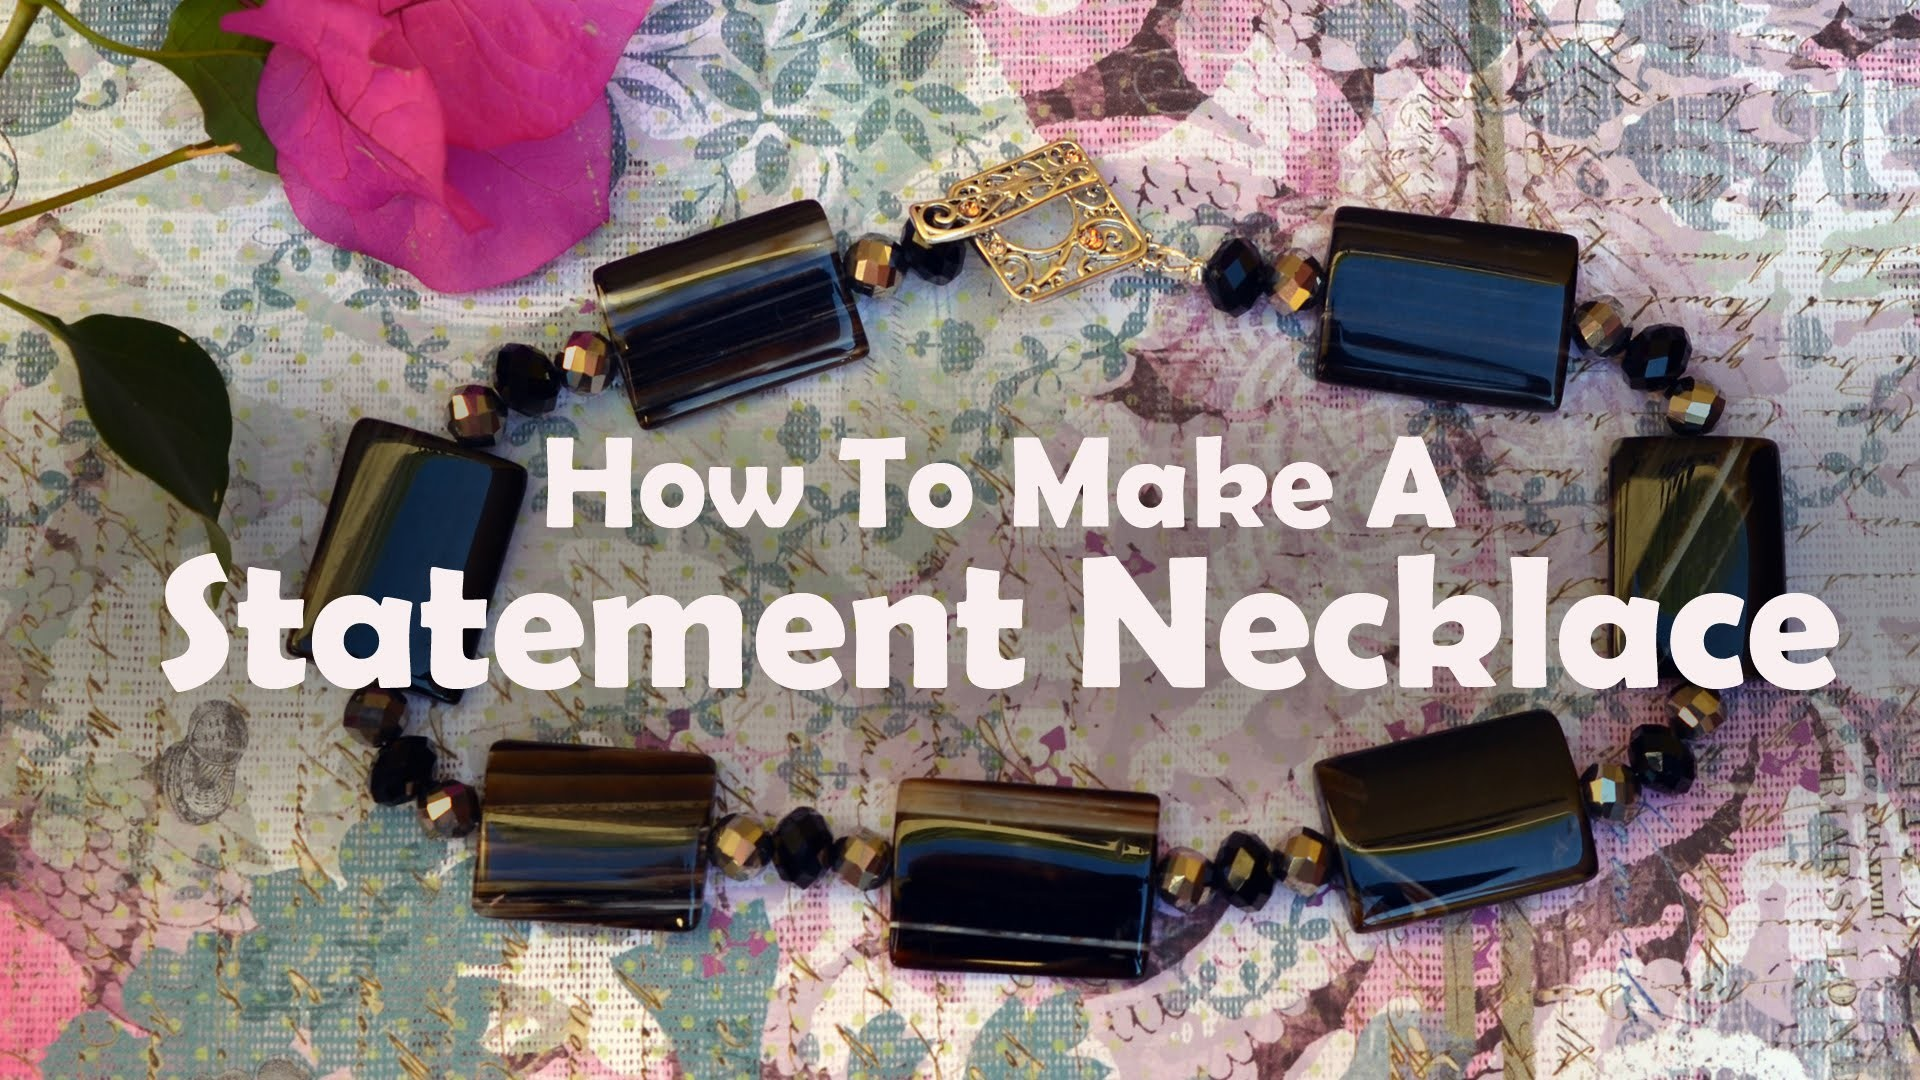 How To Make Jewelry: How To Bead A Necklace